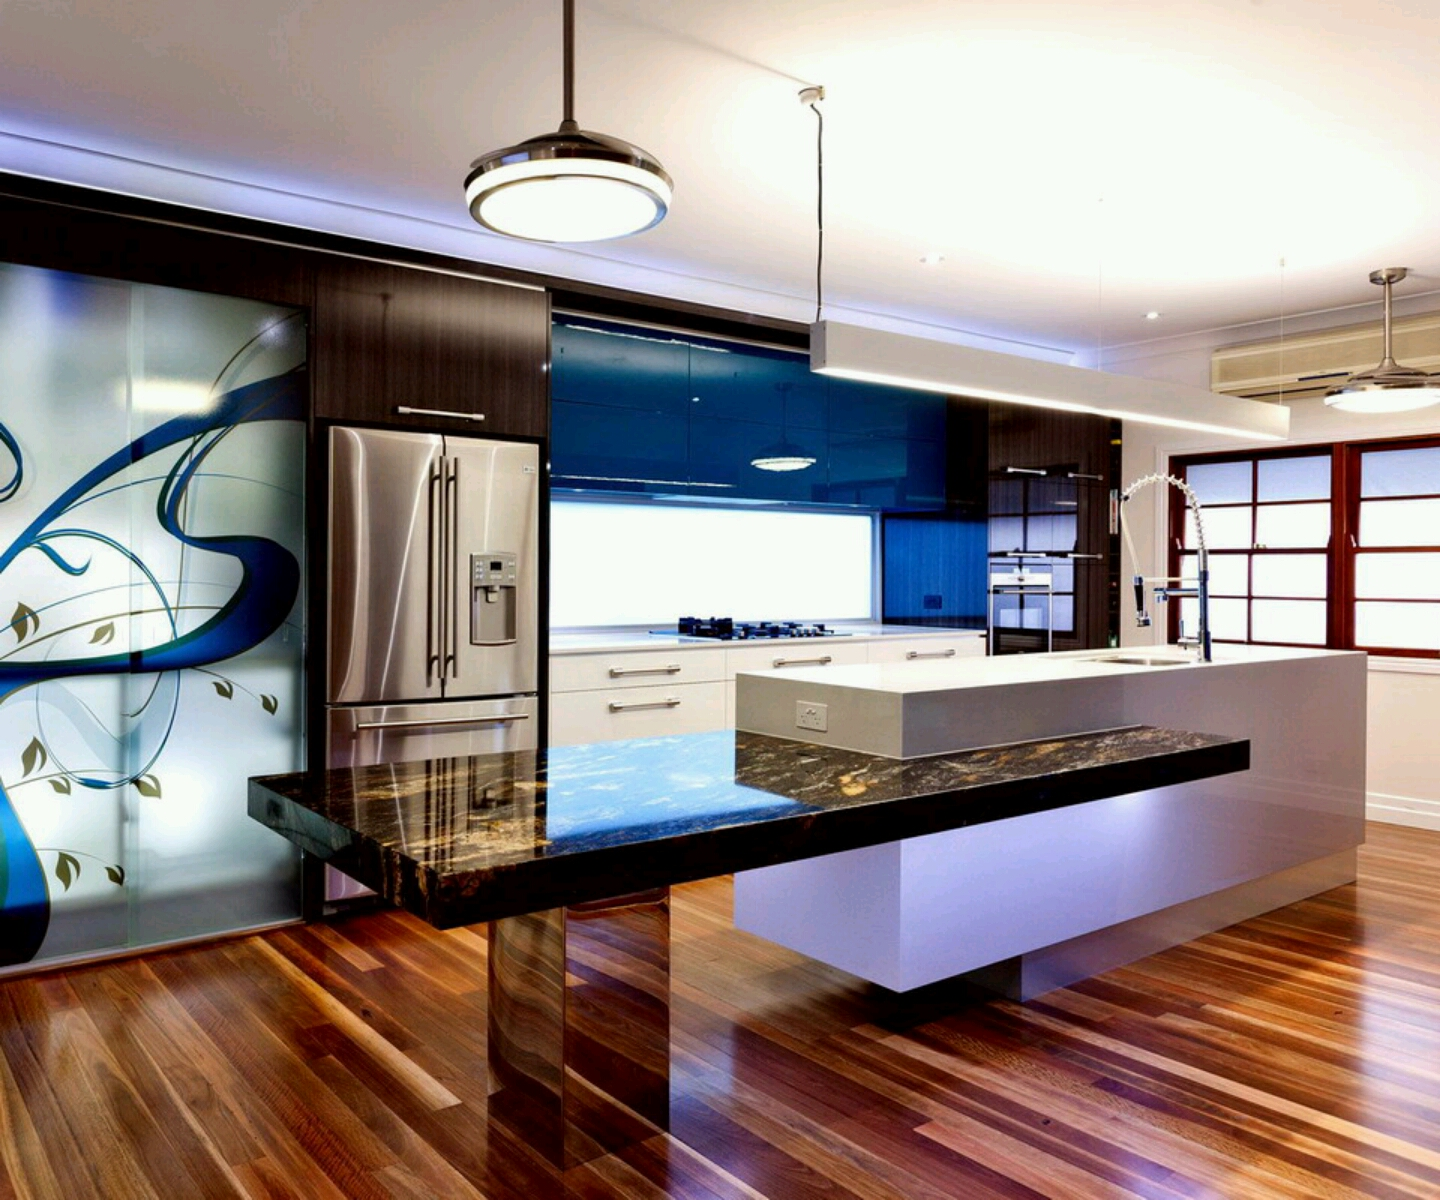 New home designs latest ultra modern kitchen designs ideas for Latest kitchen island designs